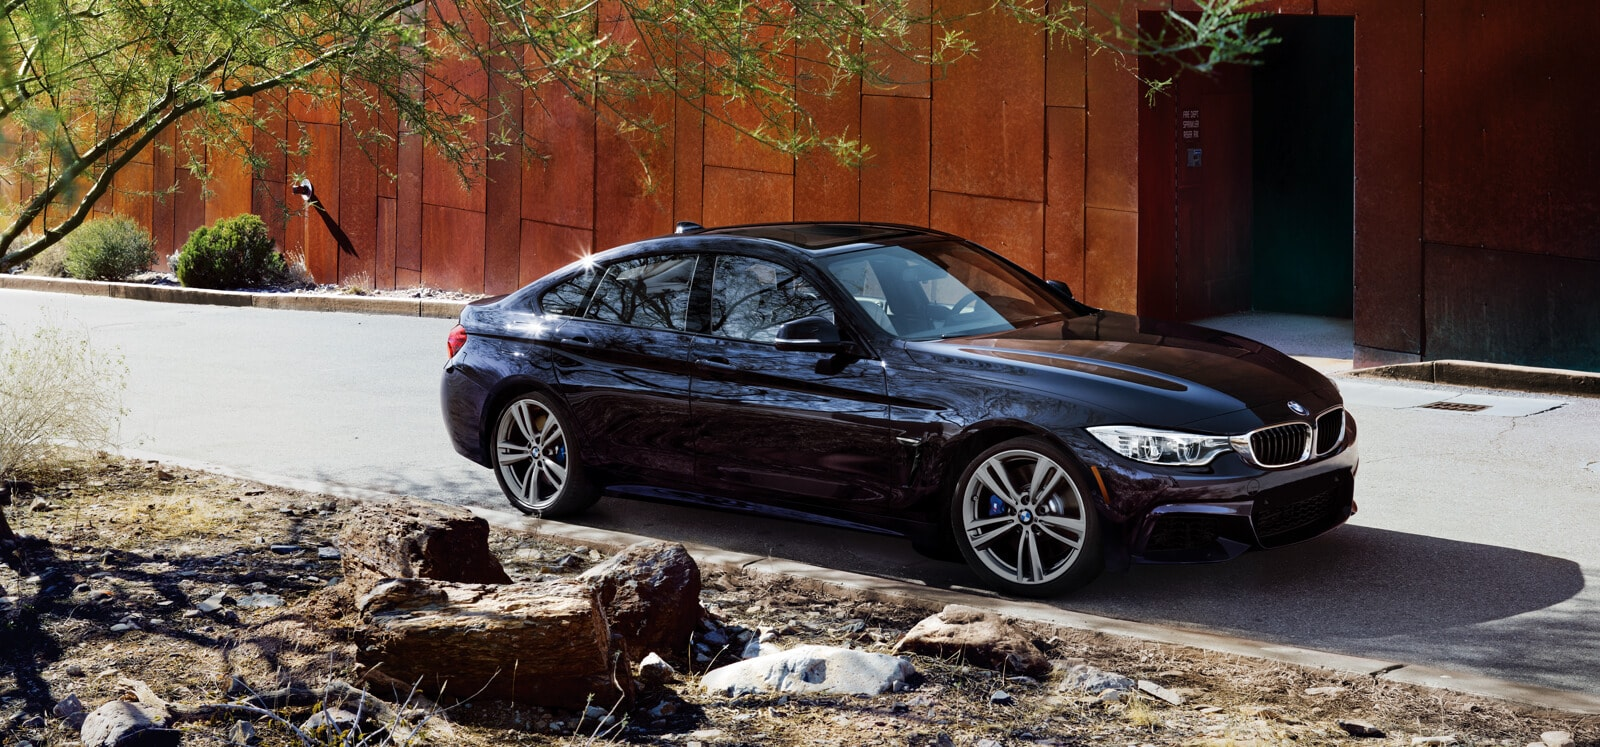 bmw 4 series gran coupe model overview bmw north america. Black Bedroom Furniture Sets. Home Design Ideas